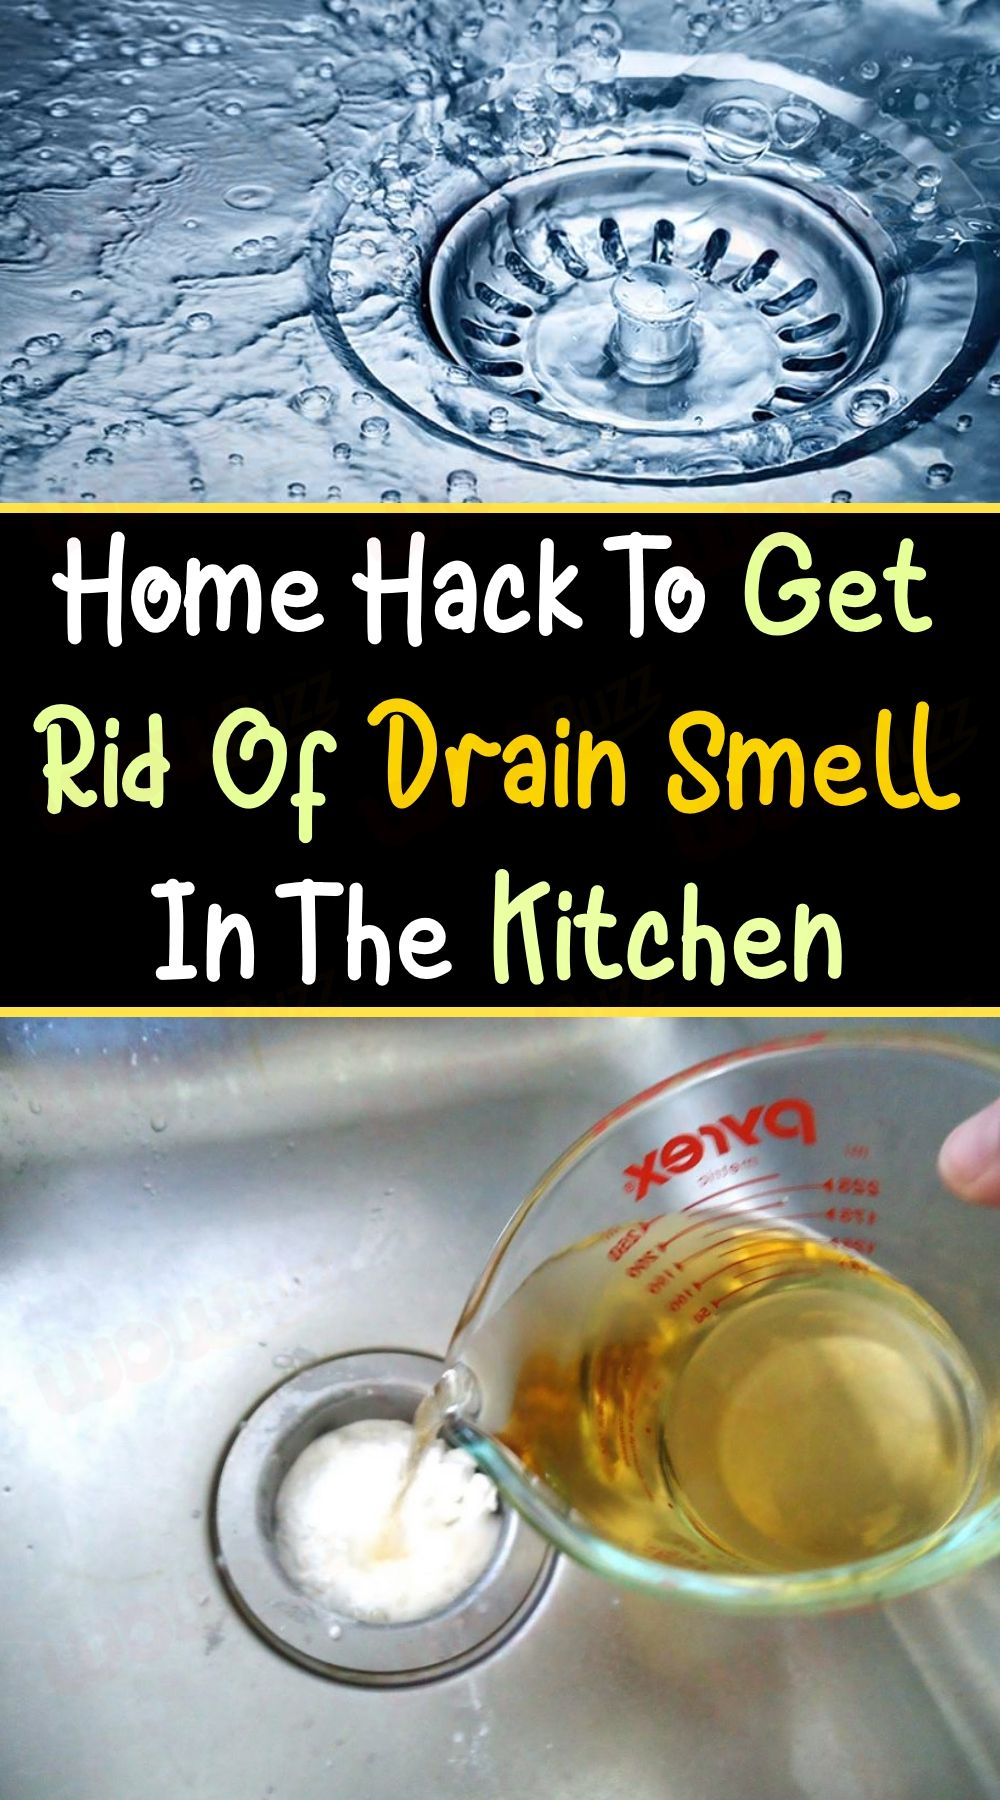 Home Hack To Get Rid Of Drain Smell In The Kitchen